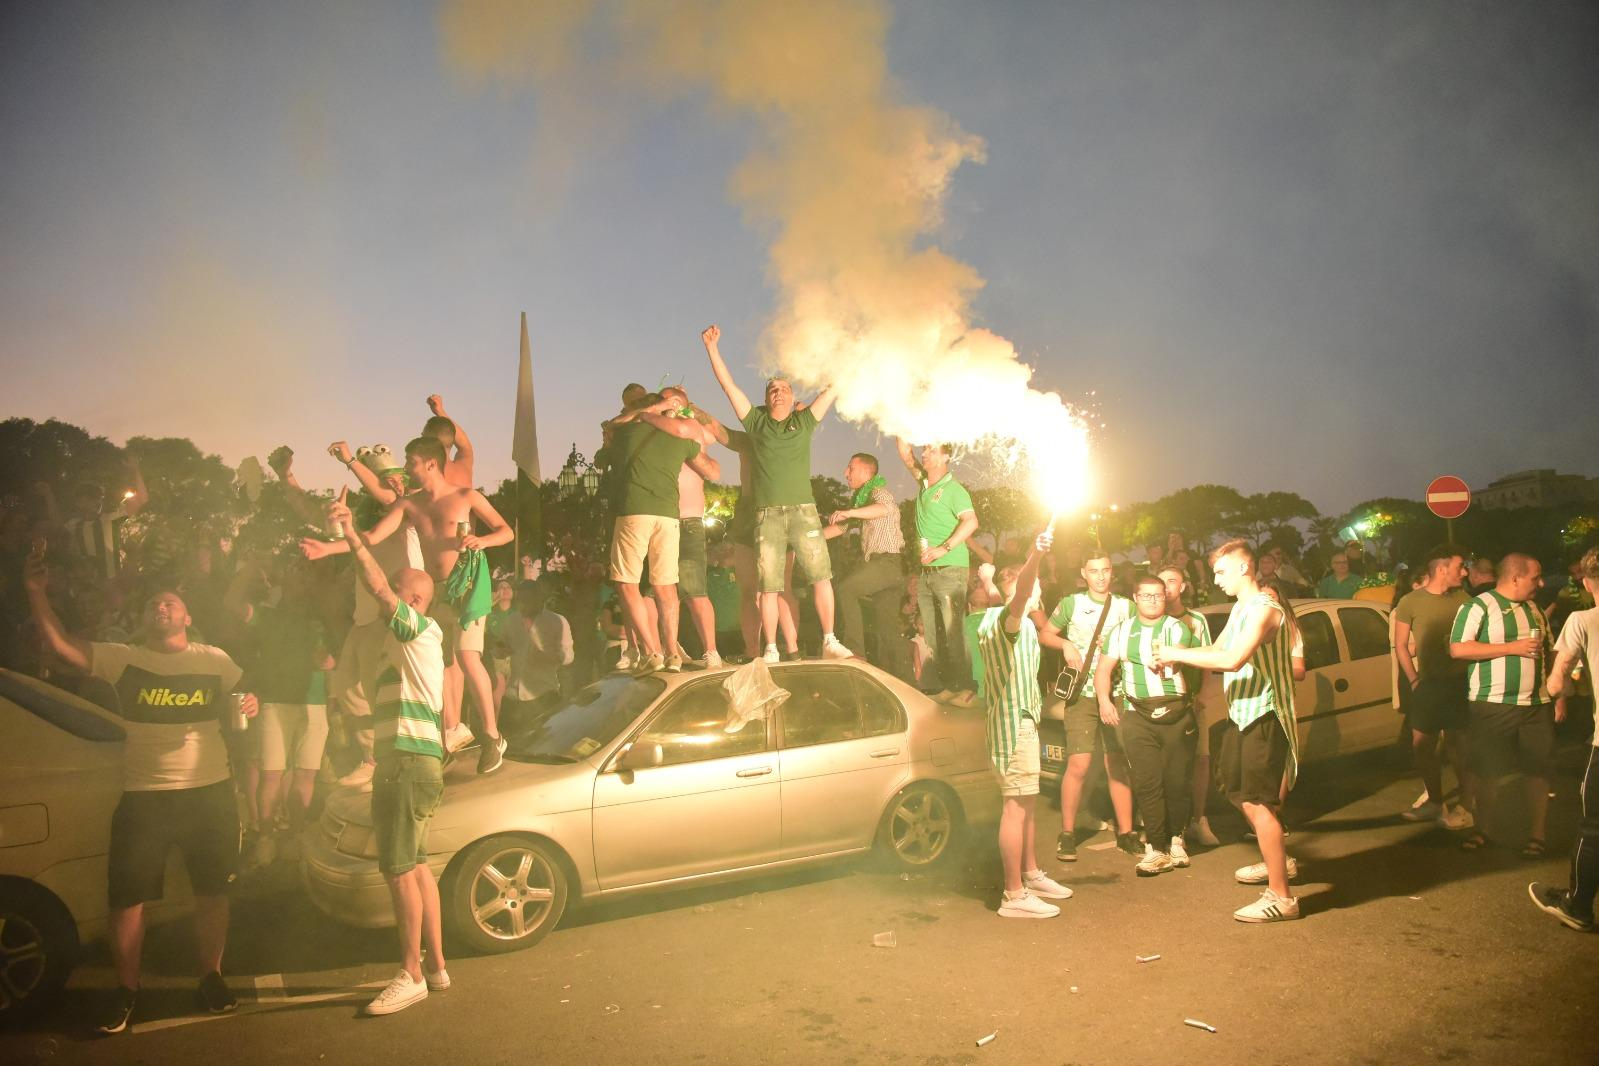 Hugs and celebrations as social distancing rules are forgotten during Floriana celebrations. Photo: Mark Zammit Cordina